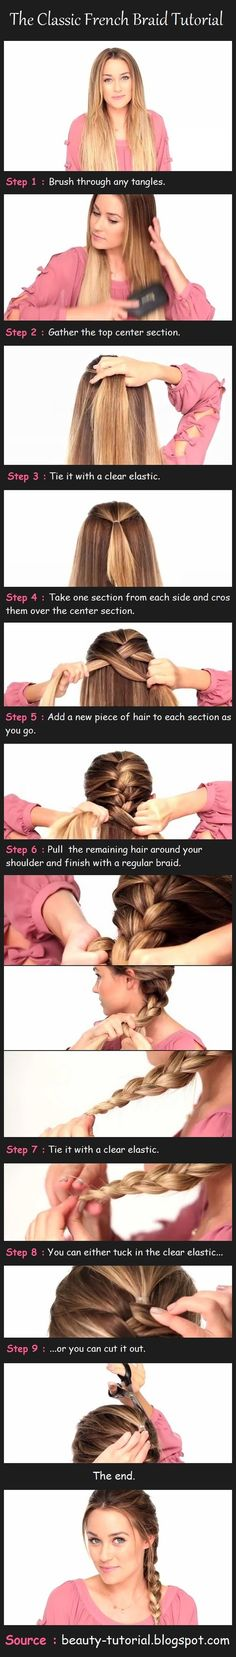 The Classic French Braid Tutorial | Beauty Tutorials - The Beauty Thesis